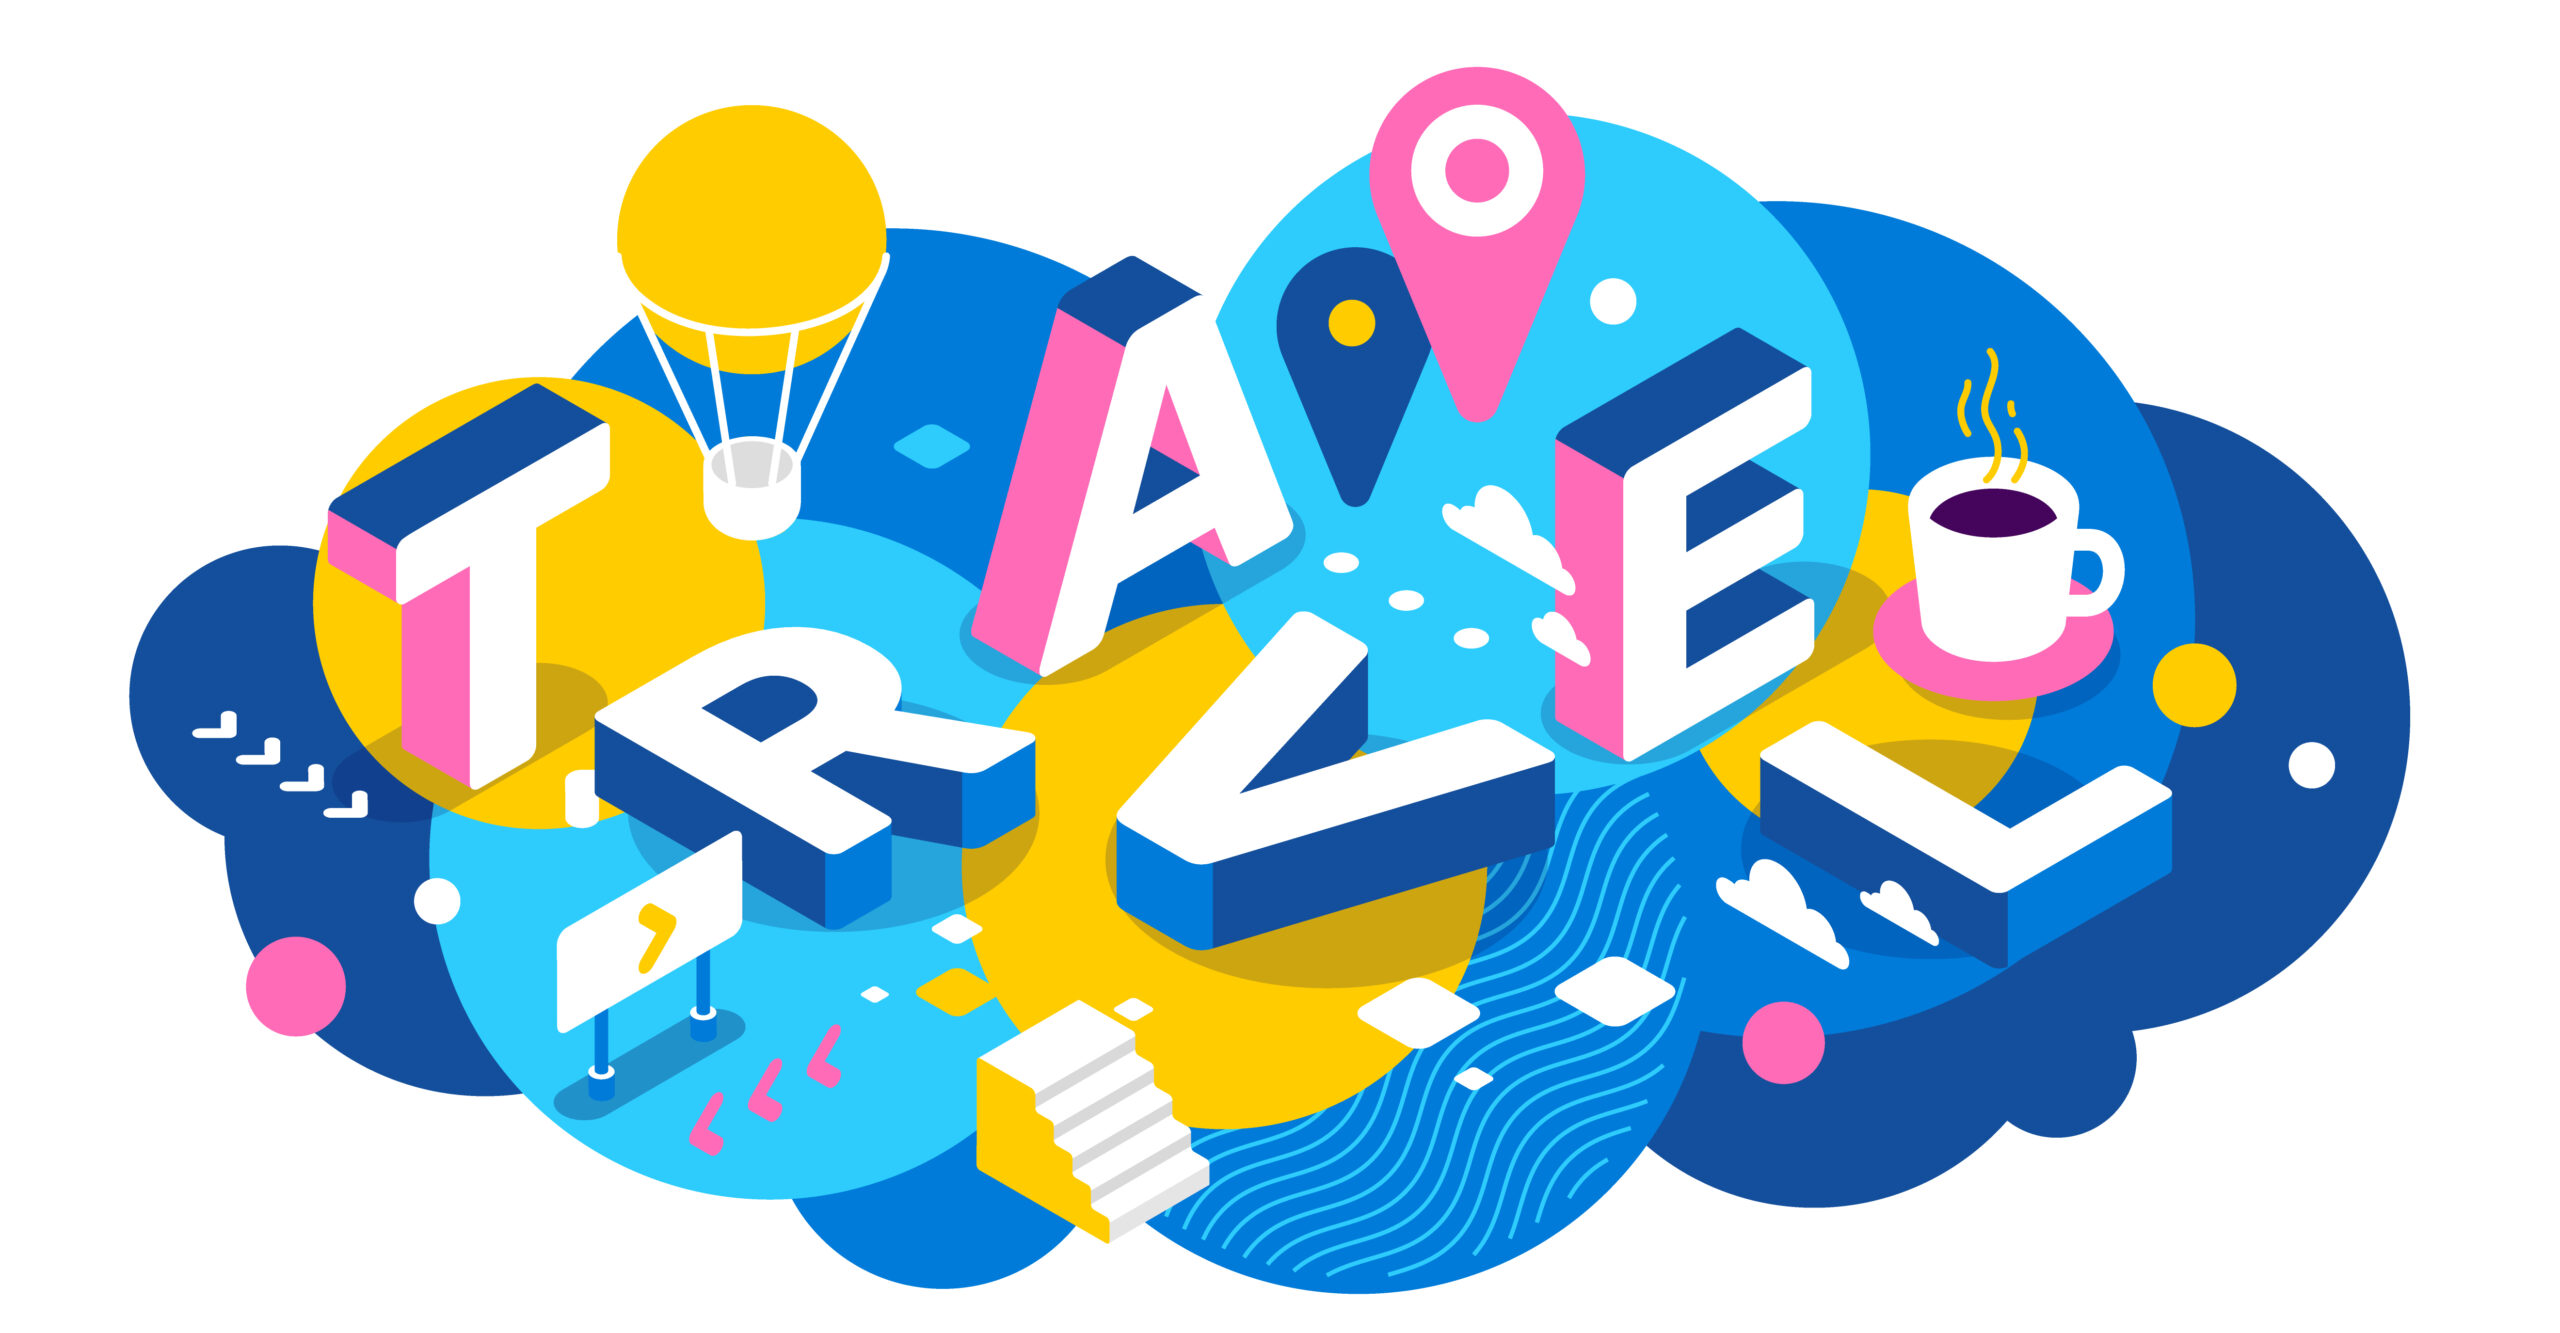 Vector creative abstract horizontal illustration of 3d travel word lettering typography on colorful background. Travel company concept with air balloon, decor element. Isometric design for business tourist advertising web, site, banner